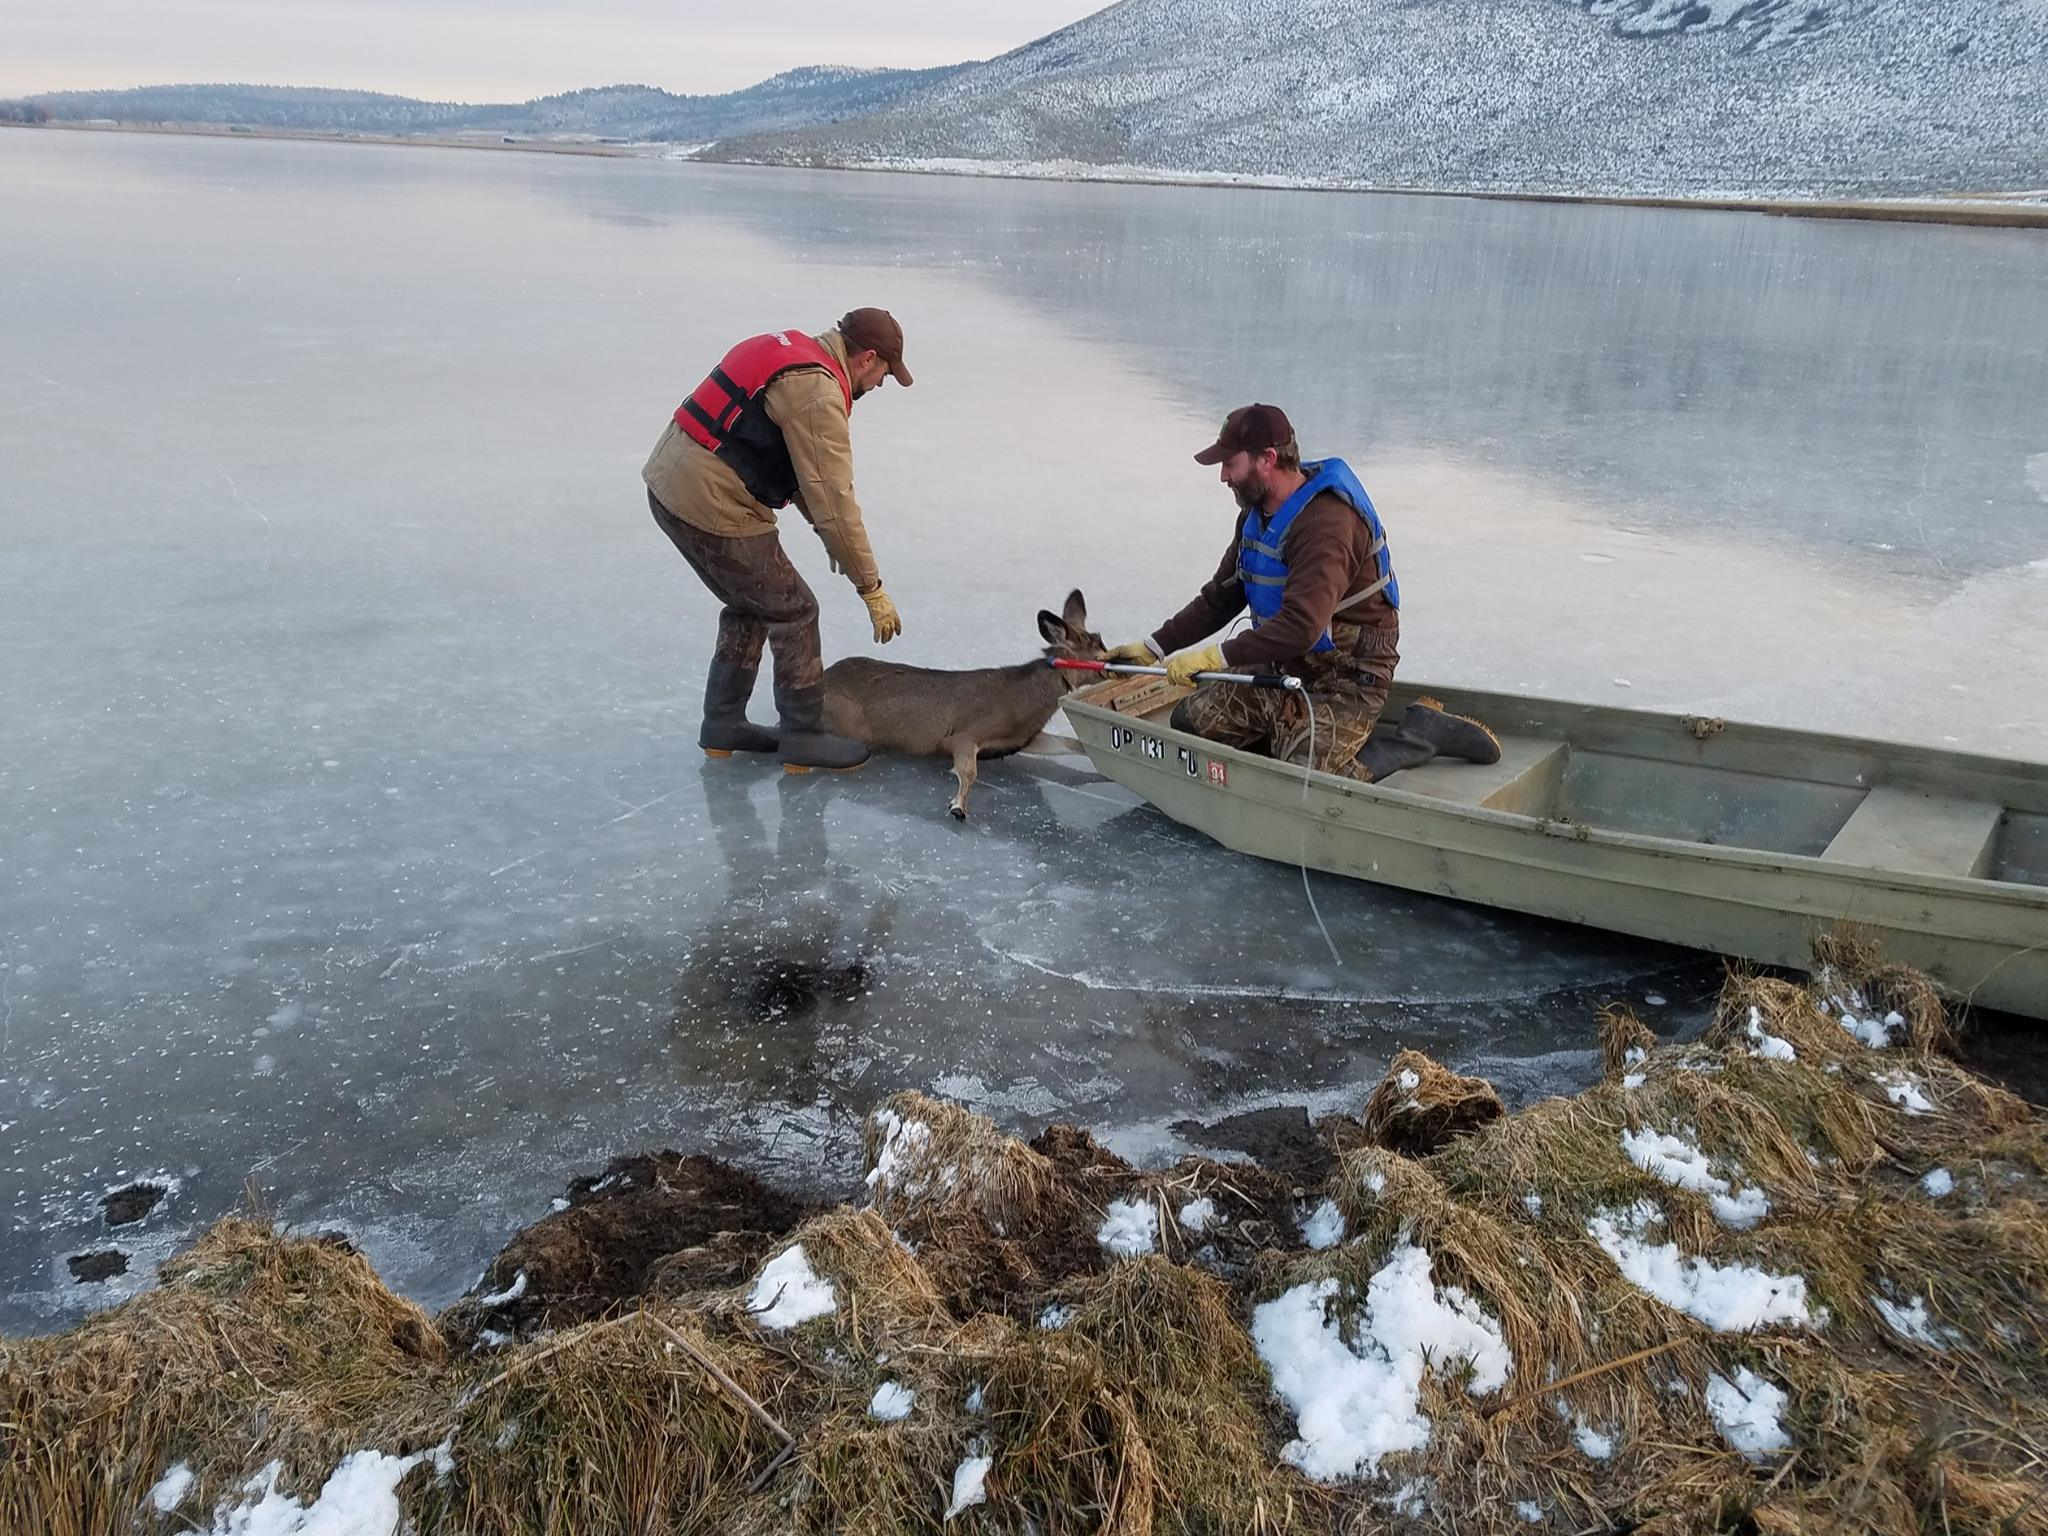 Two Oregon Department of Fish and Wildlife biologists borrowed a boat from the landowner. Using the boat, they crossed the ice and reached the deer. The biologists brought the exhausted buck back to shore. (OSP)